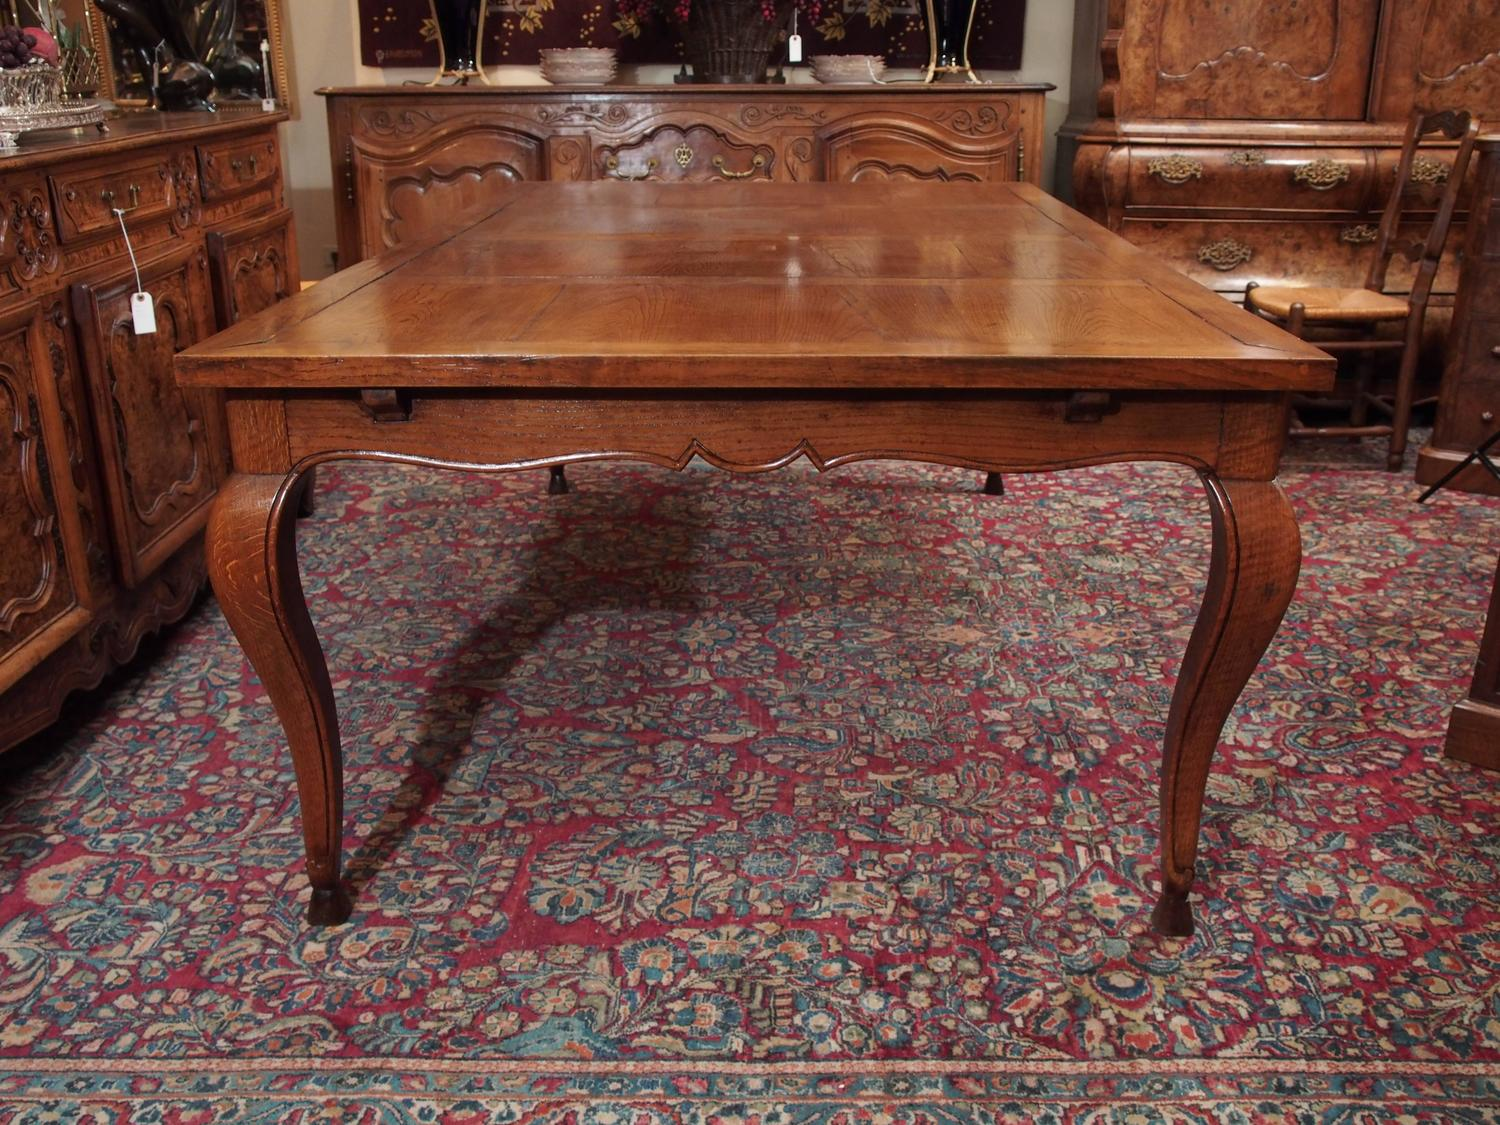 French provincial dining room table 28 images french provincial dining room table with leaf - Antique french dining tables ...